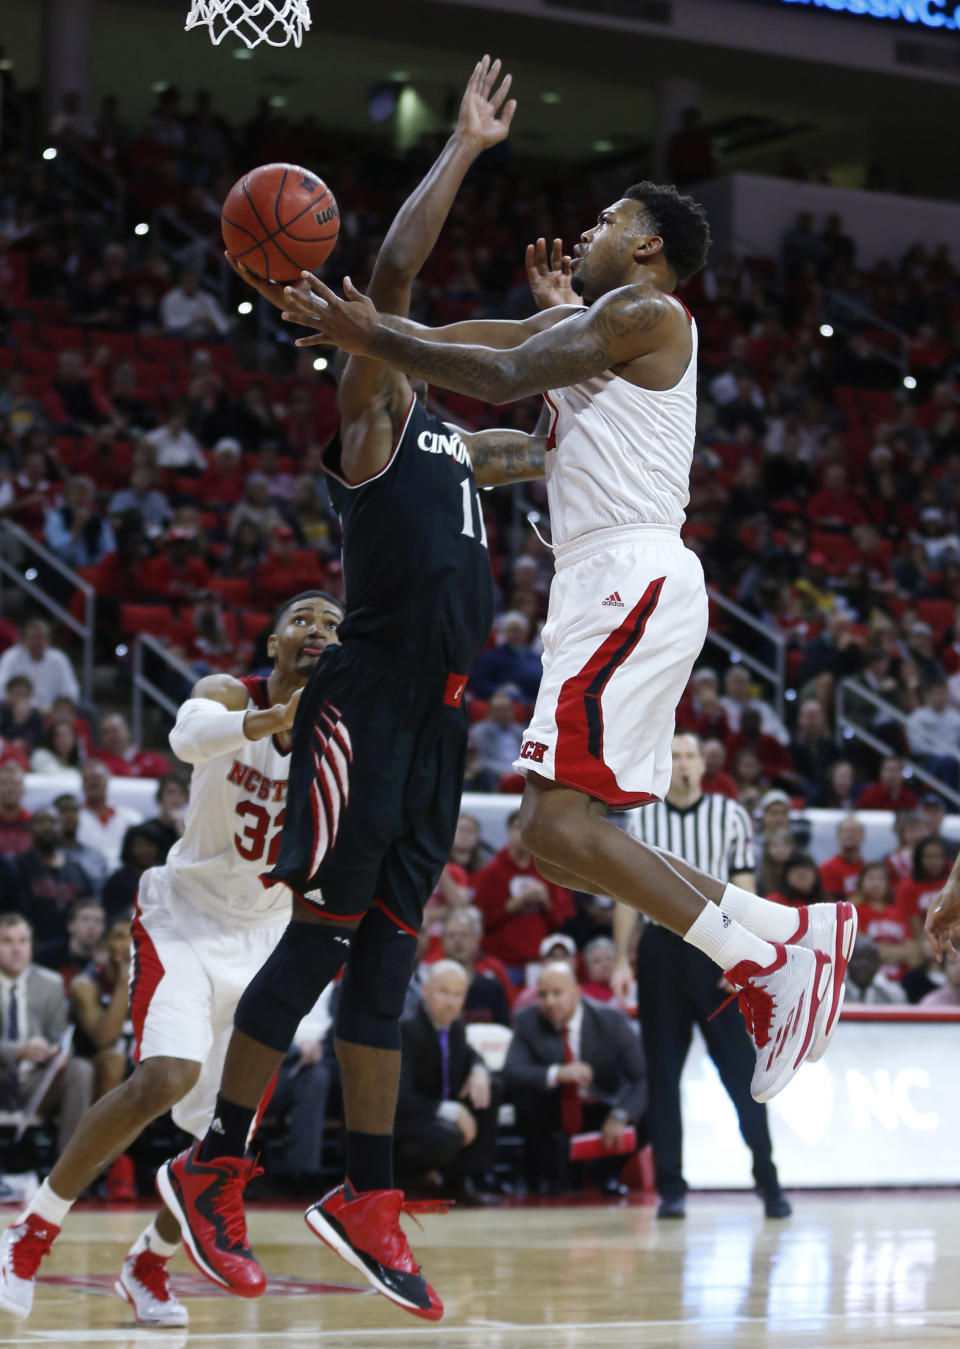 North Carolina State's Trevor Lacey (1) drives to the basket as Cincinnati's Gary Clark (11) defends during the first half of an NCAA college basketball game Tuesday, Dec. 30, 2014, in Raleigh, N.C. (AP Photo/The News & Observer, Ethan Hyman)